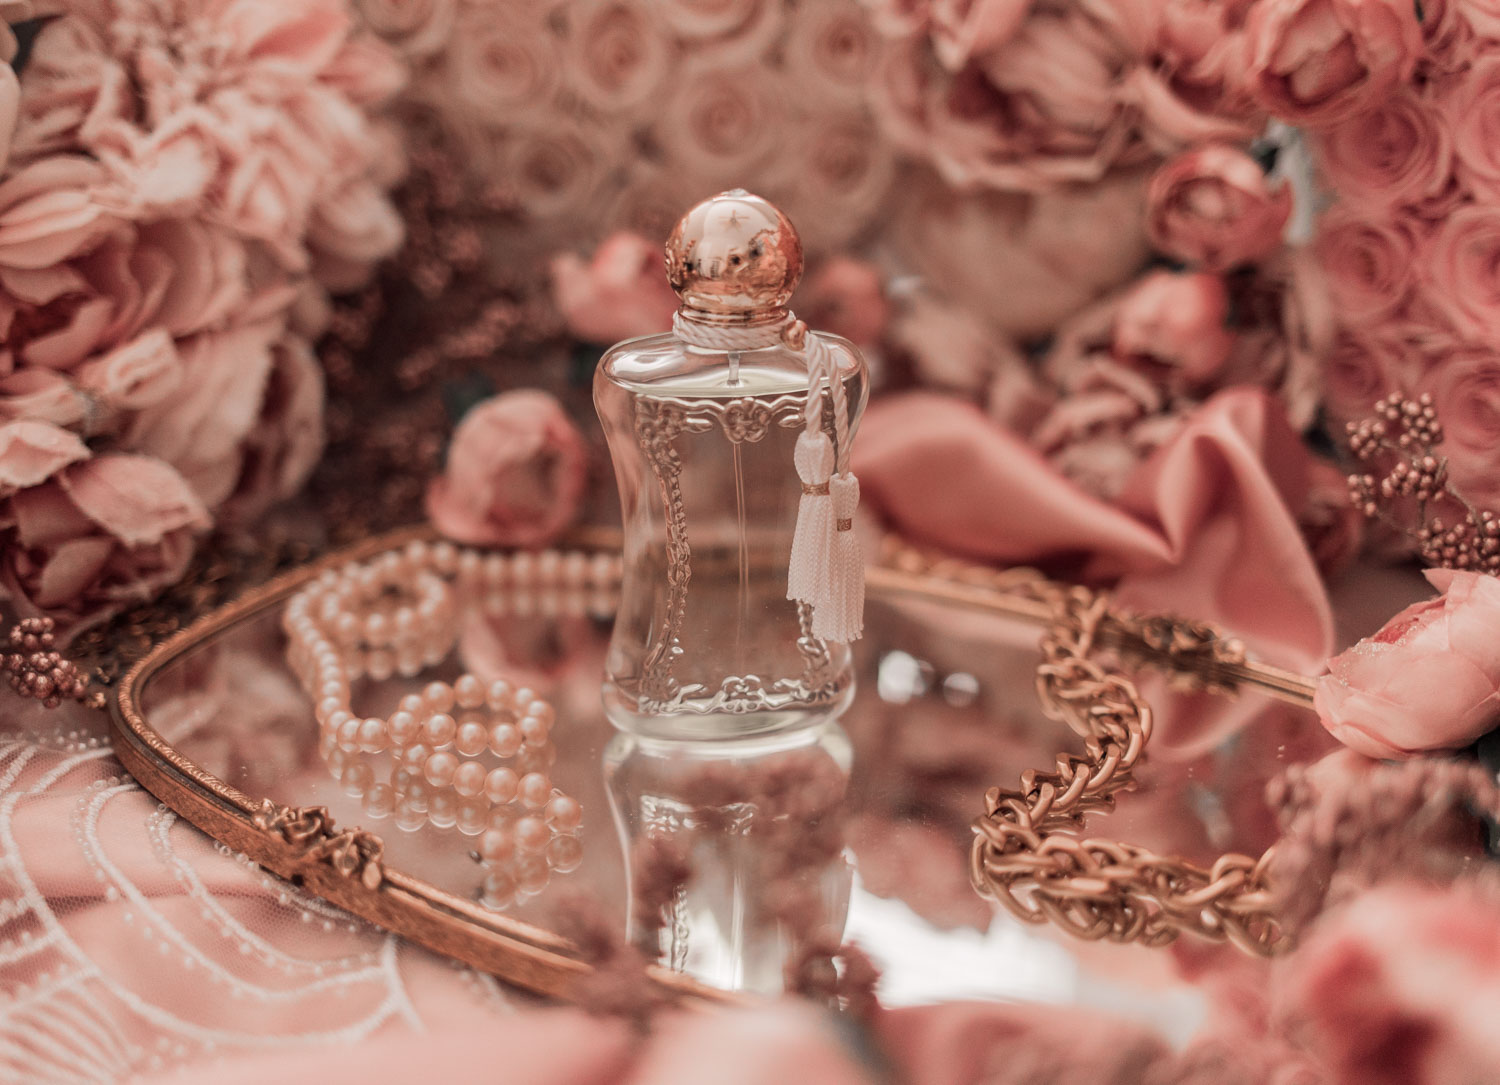 Feminine fashion and beauty blogger Elizabeth Hugen of Lizzie in Lace shares the Parfums de Marly feminine perfume collection including Meliora